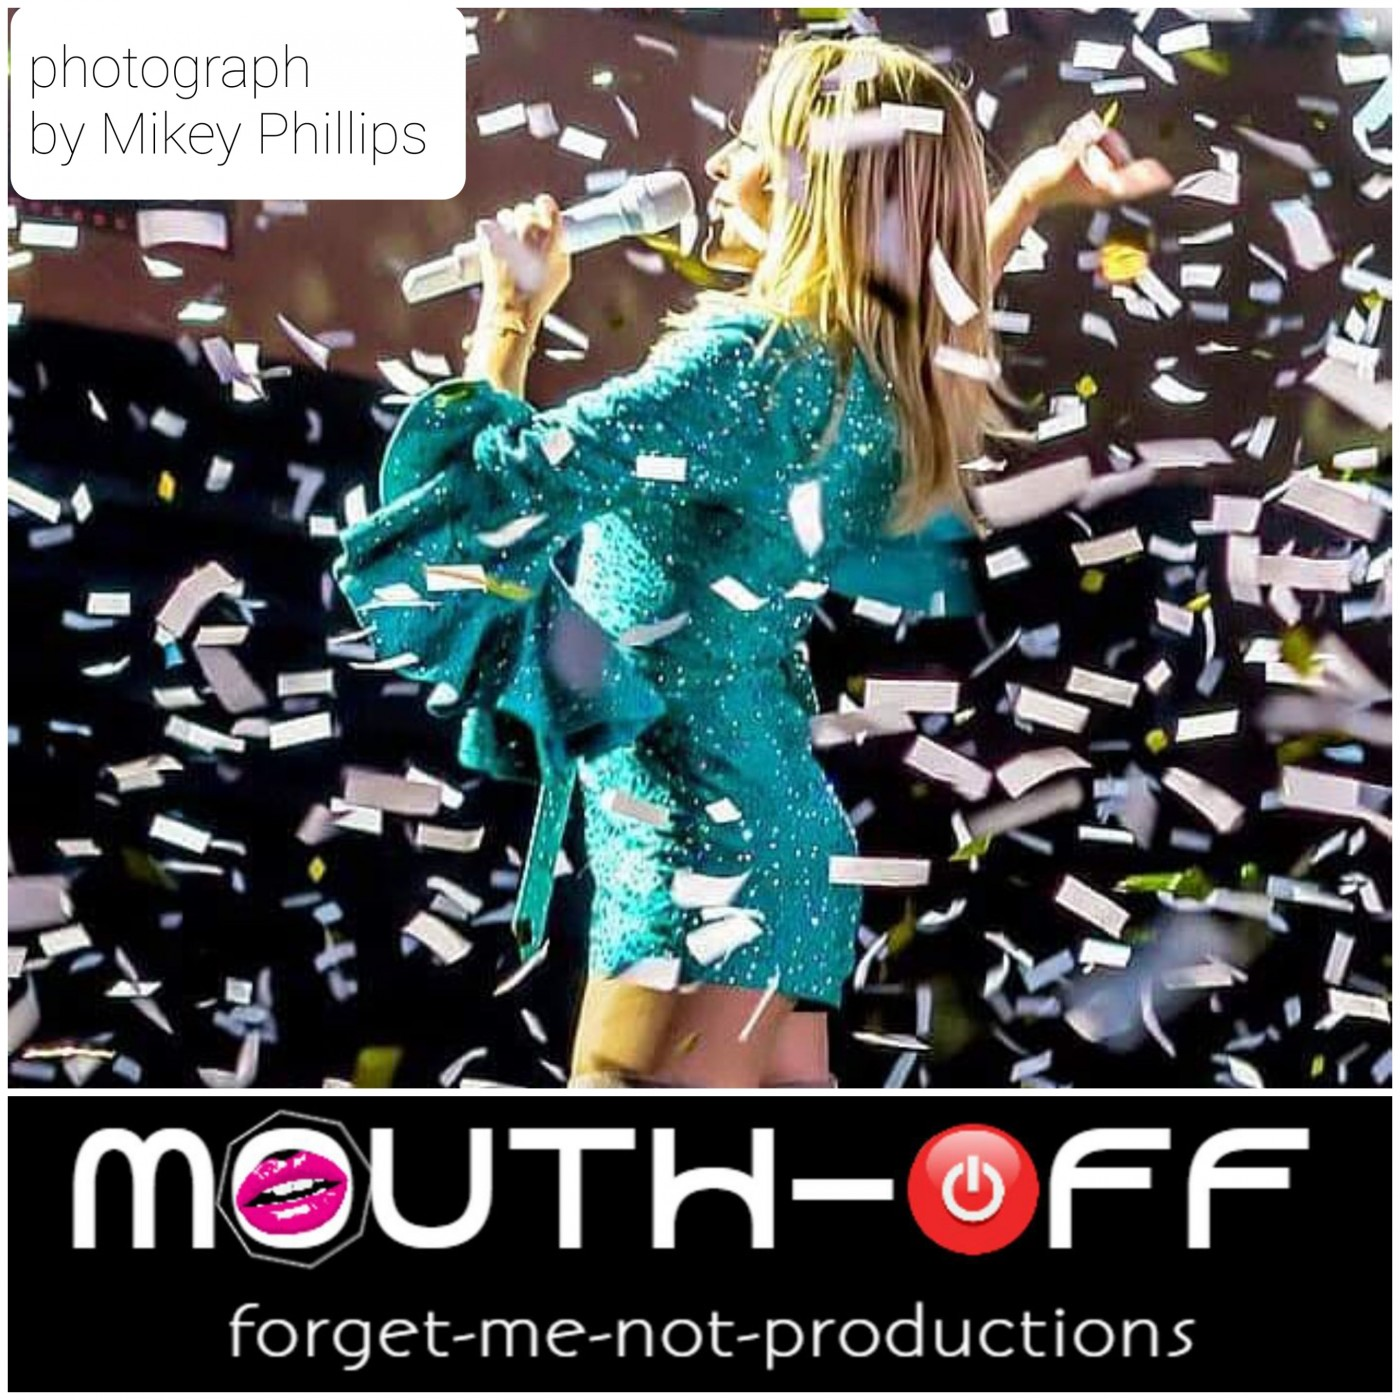 Mouth-Off Episode 12: KYLIE; the deconstruction of a gay icon